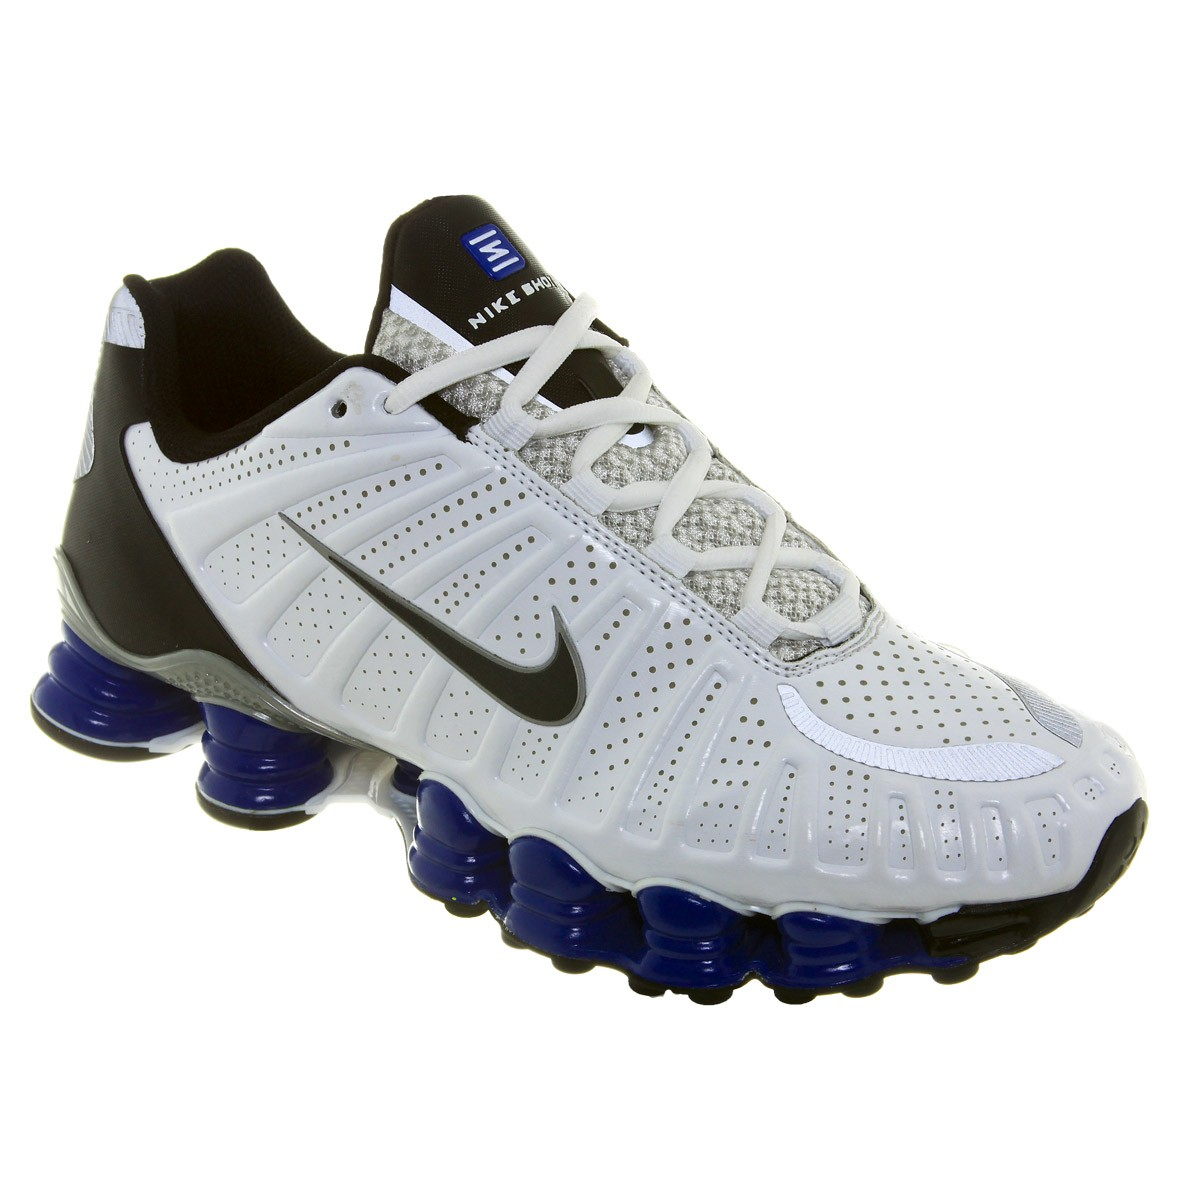 online store 93474 e4198 Exclusividade World Tennis – Nike Shox TLX